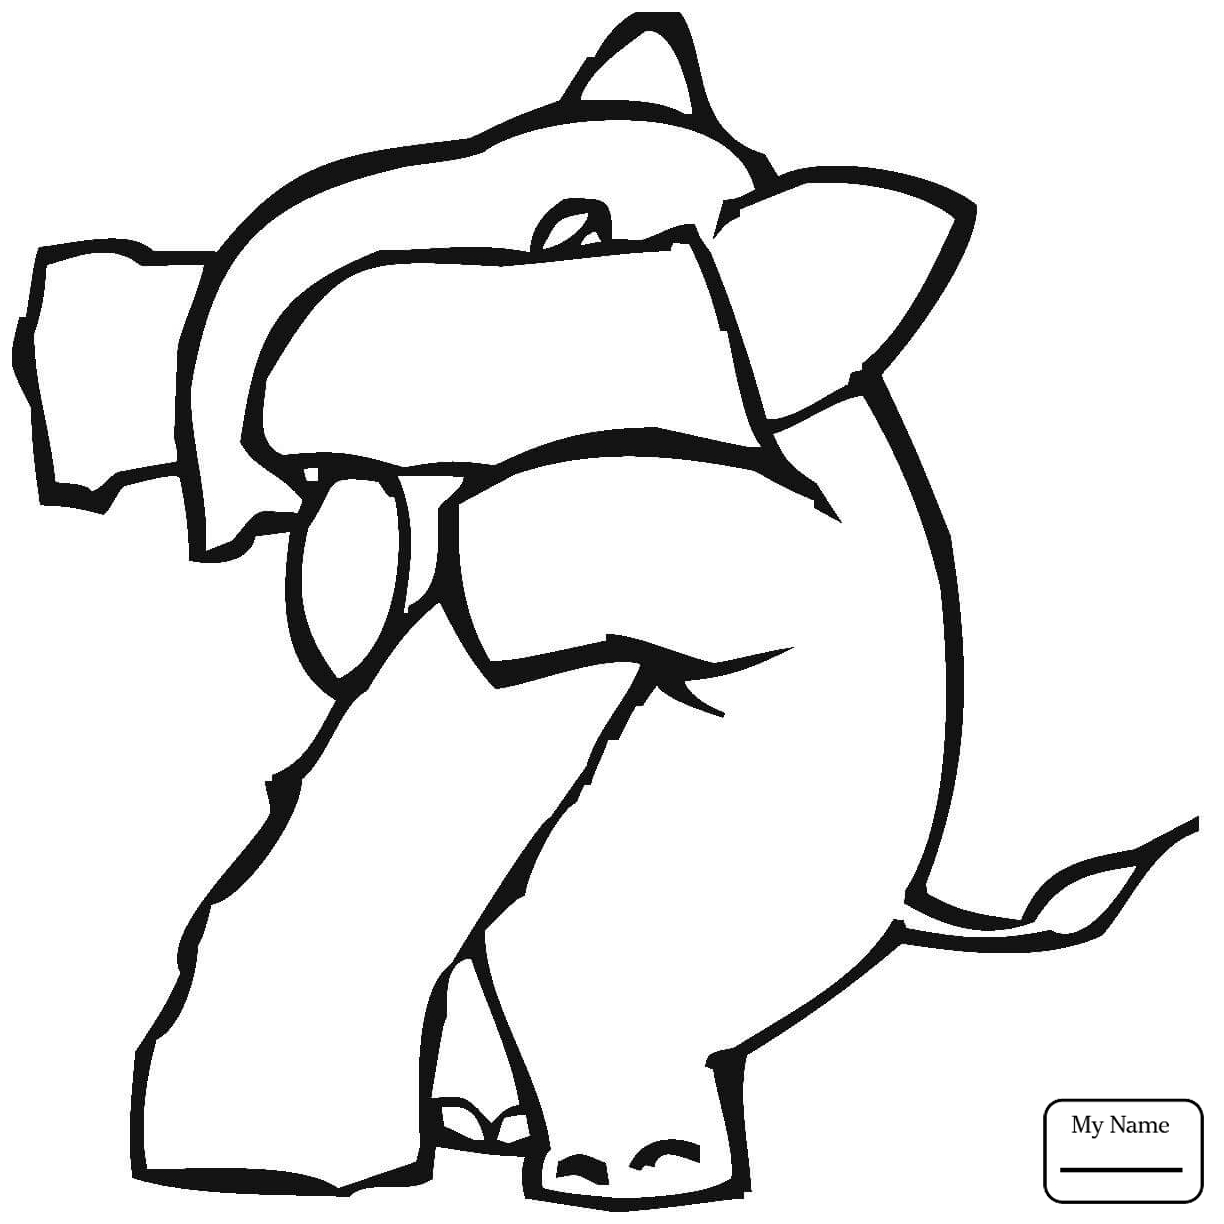 1224x1224 Number 9 Science Education Coloring Pages